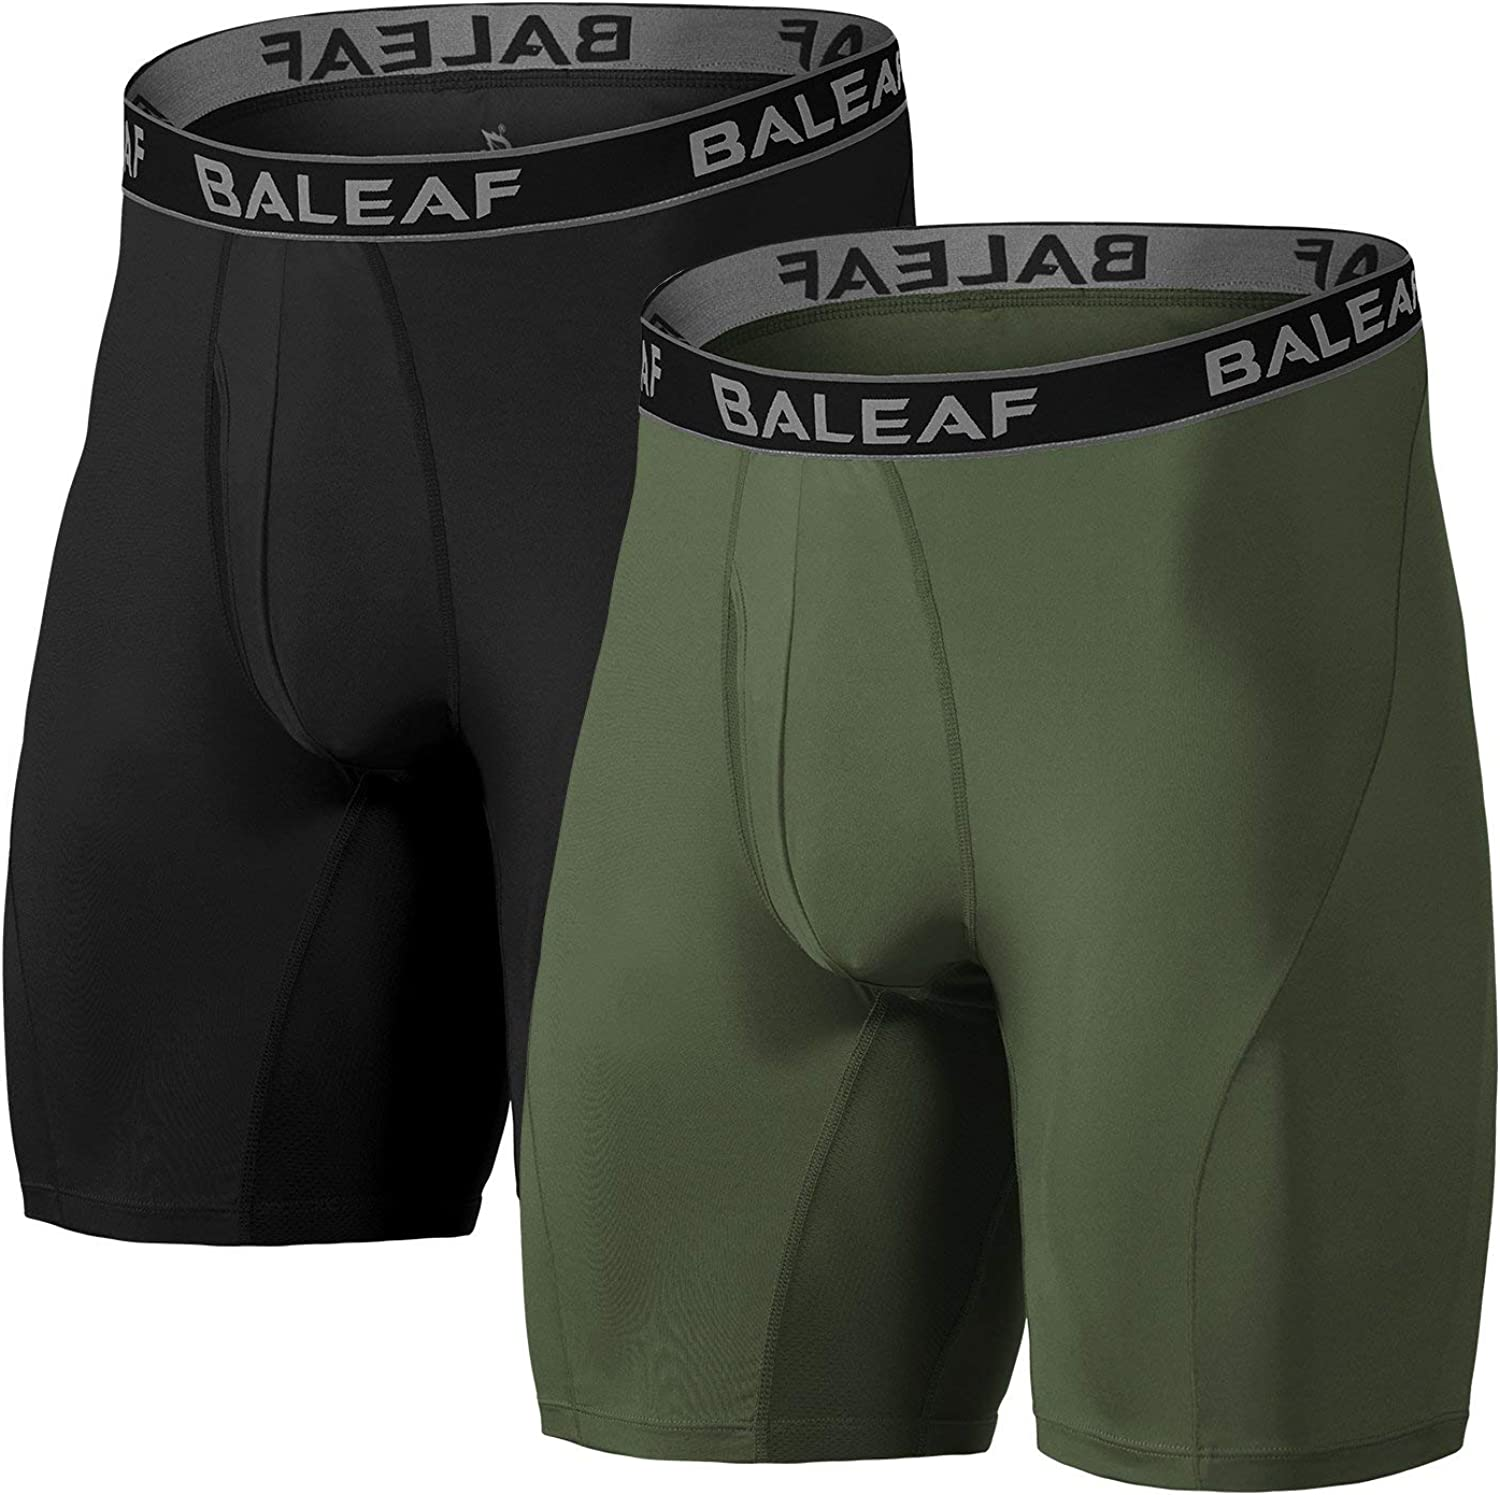 BALEAF 9'' Men's Active Underwear Sport Cool Dry Performance Boxer Briefs  with Fly (2-Pack) at Amazon Men's Clothing store